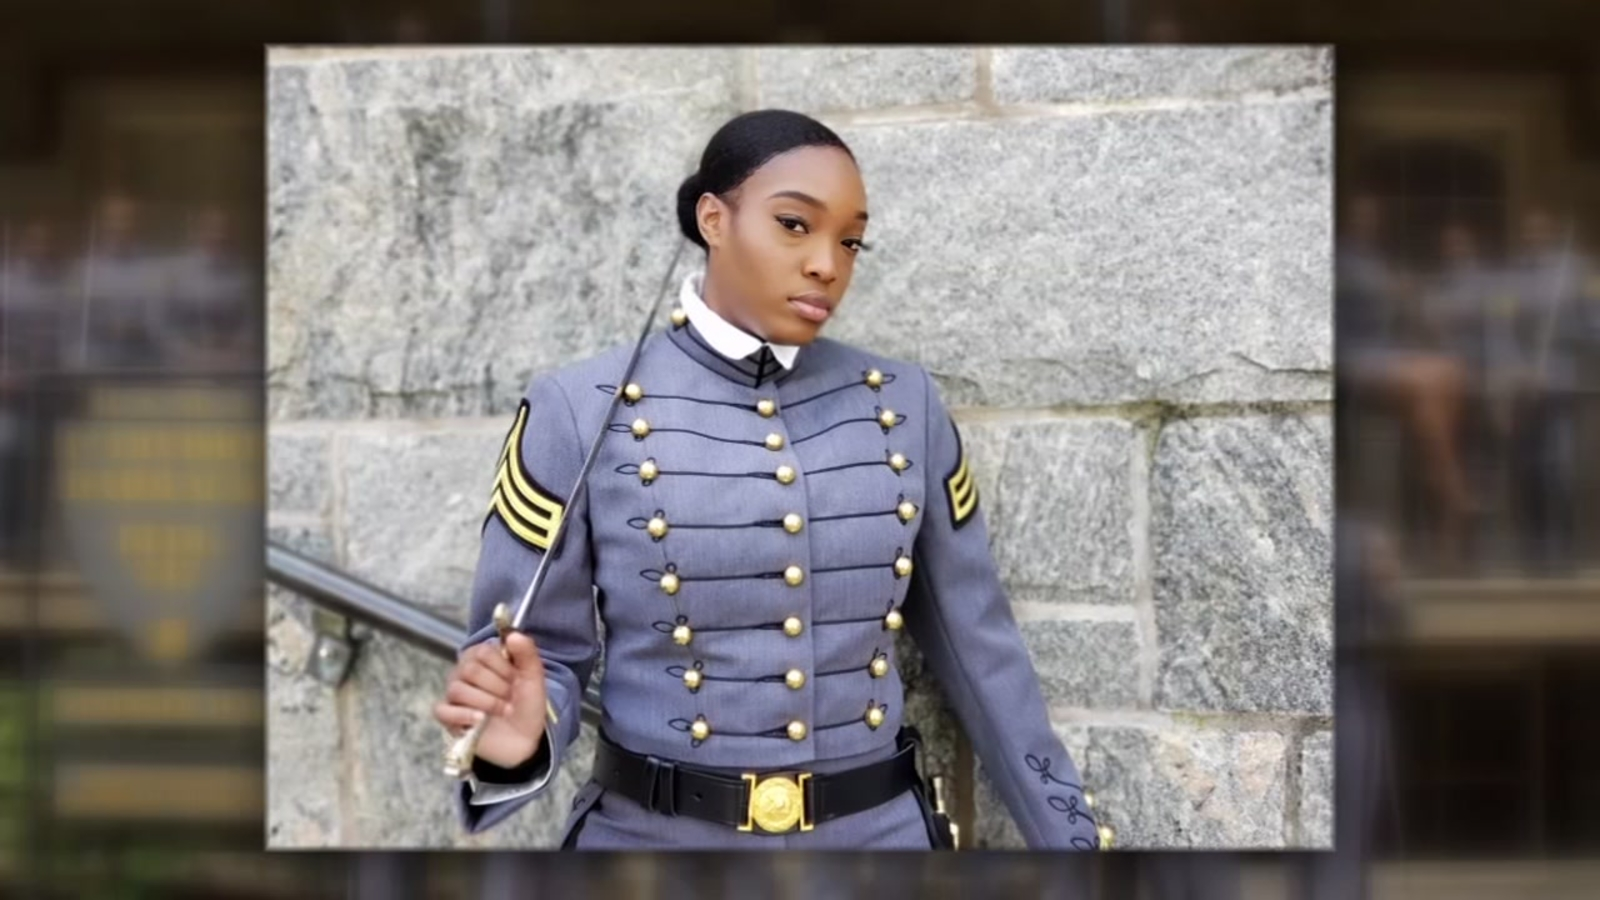 North Carolina woman is part of largest class of African-American women to graduate West Point